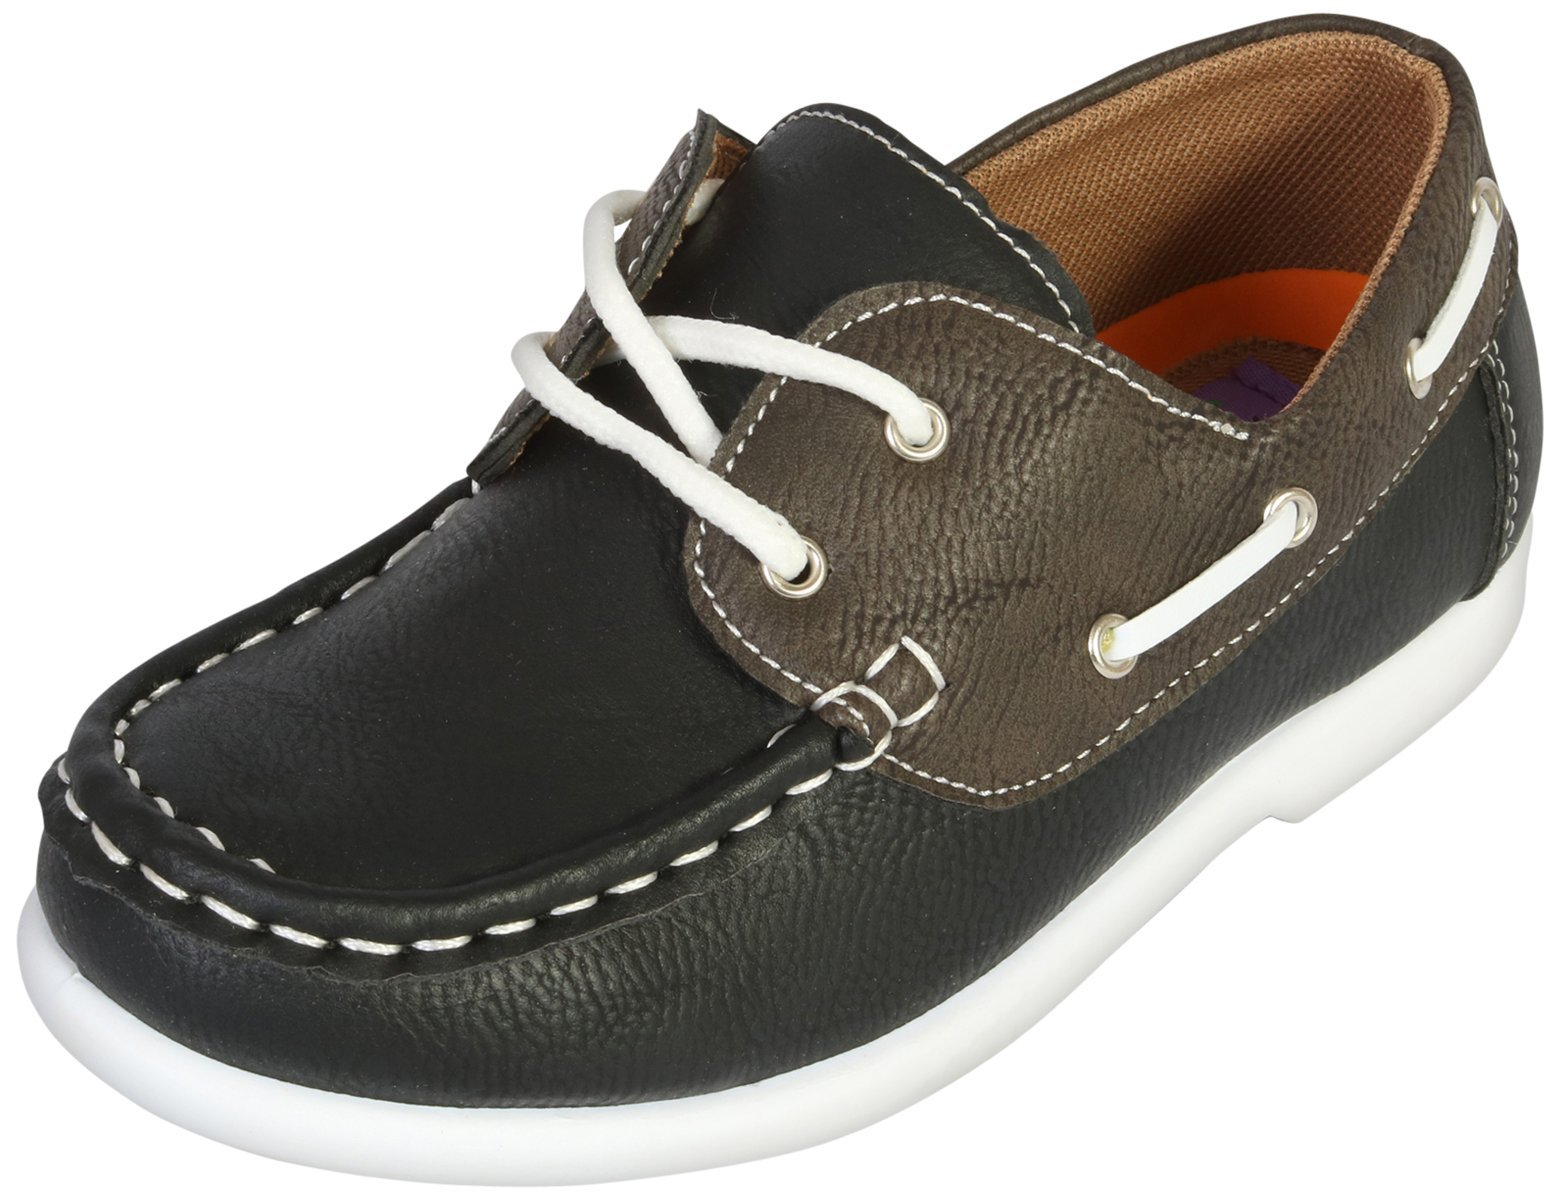 Jodano Collection Boys Slip on Boat Shoes with Memory Foam Insole, Black/Brown, 10 M US Toddler'